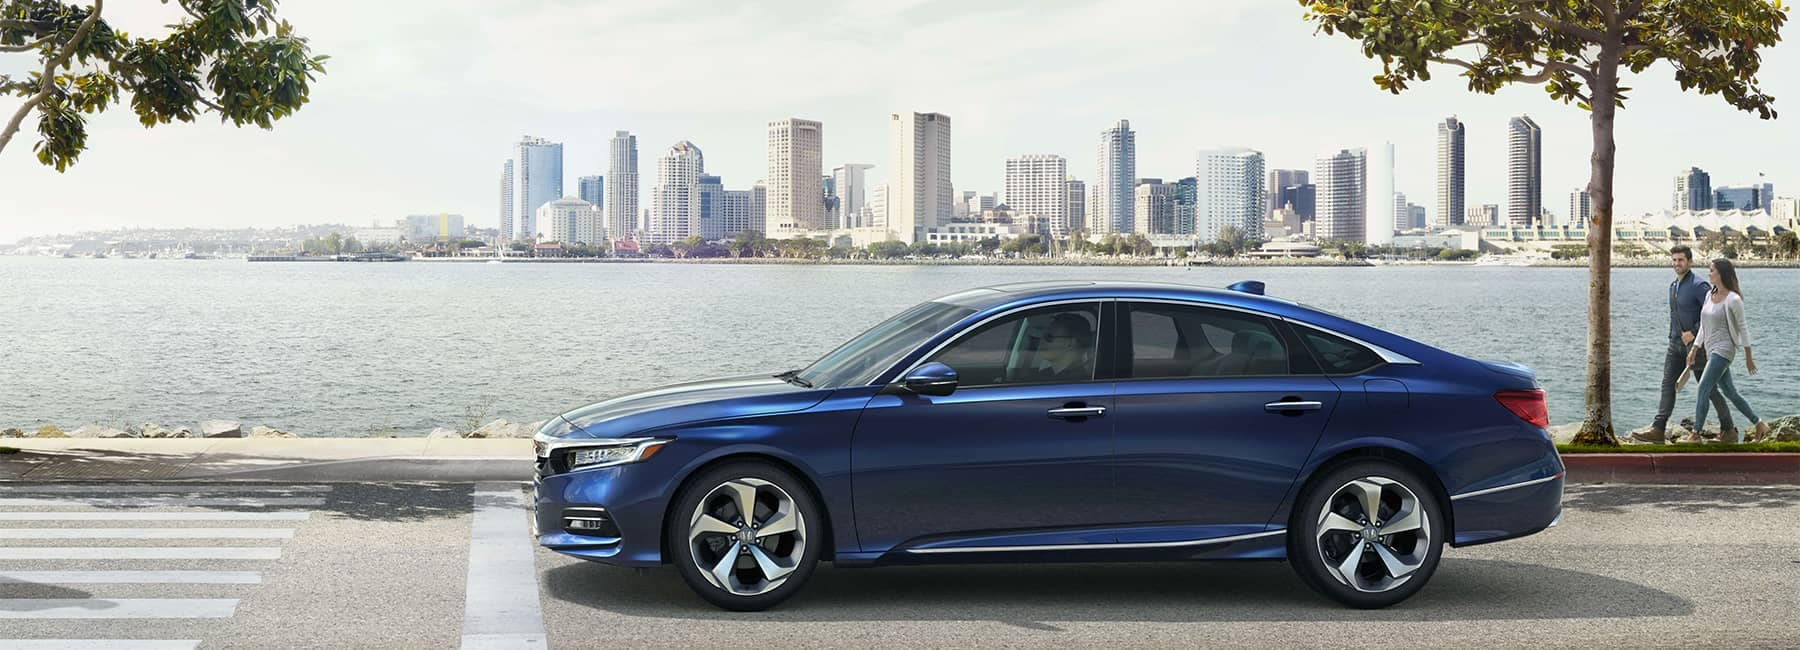 Honda Accord Side View next to body of water